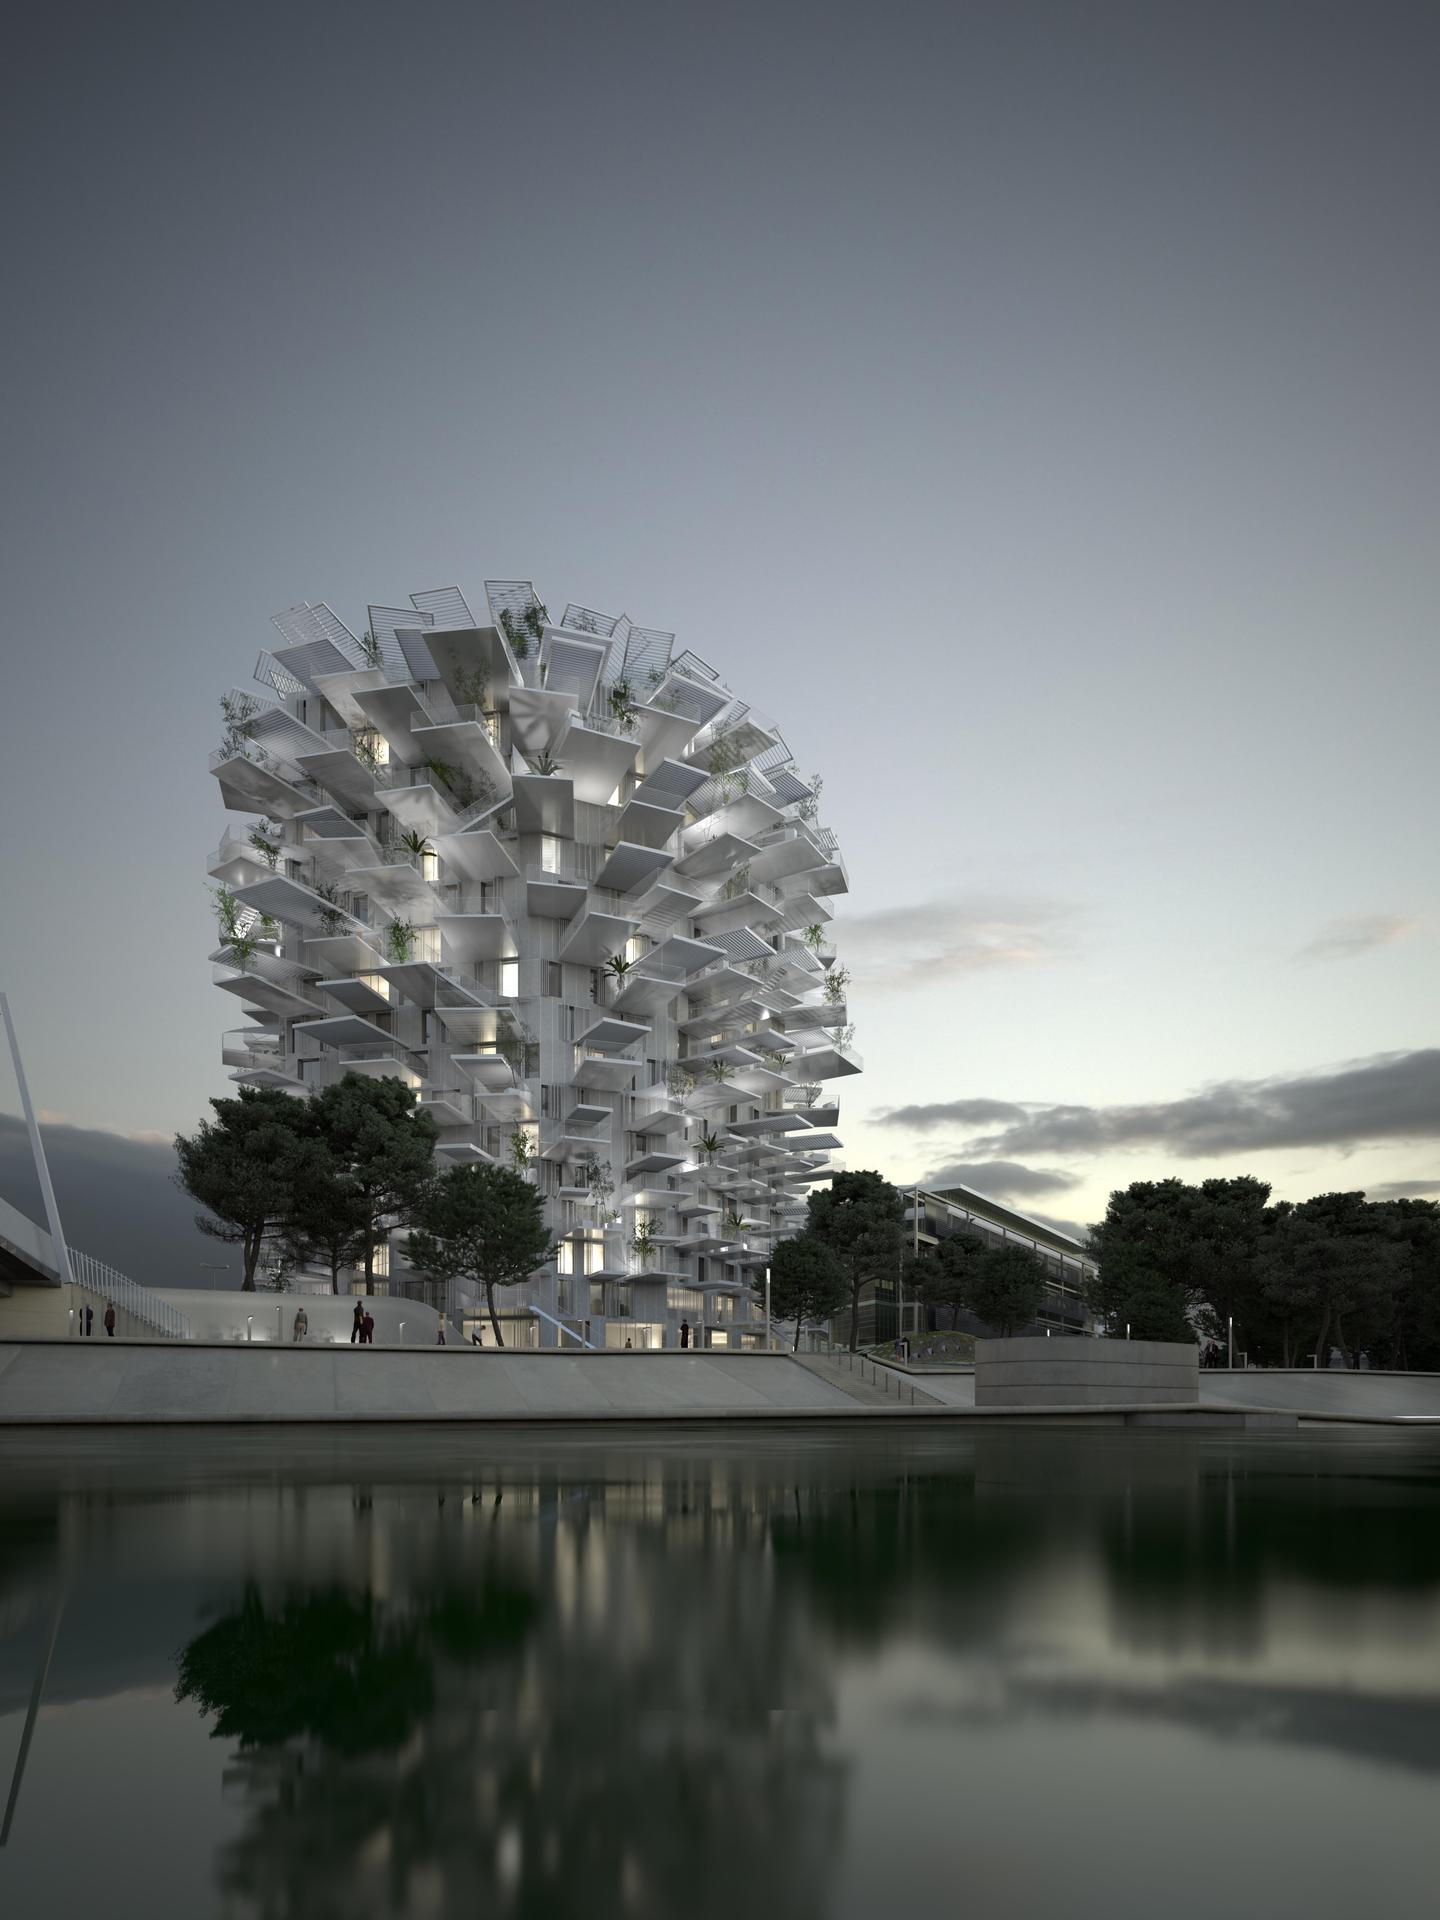 Richter 7 - Sou fujimoto architects / NL*A Paris / Oxo architects / RSI